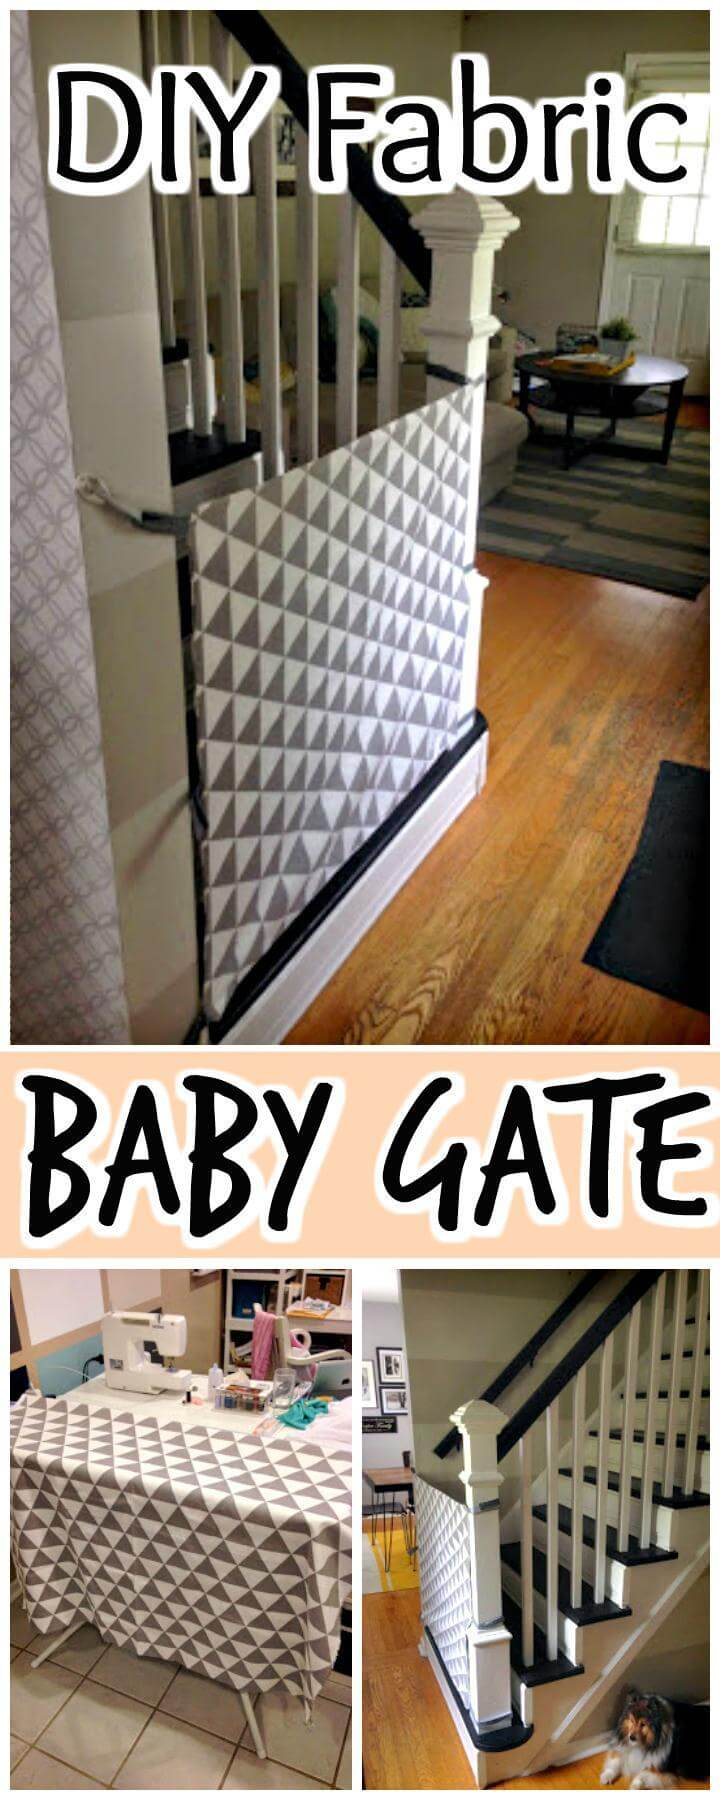 30 Best Diy Baby Gate Tutorials On Cheap Budget Diy Amp Crafts